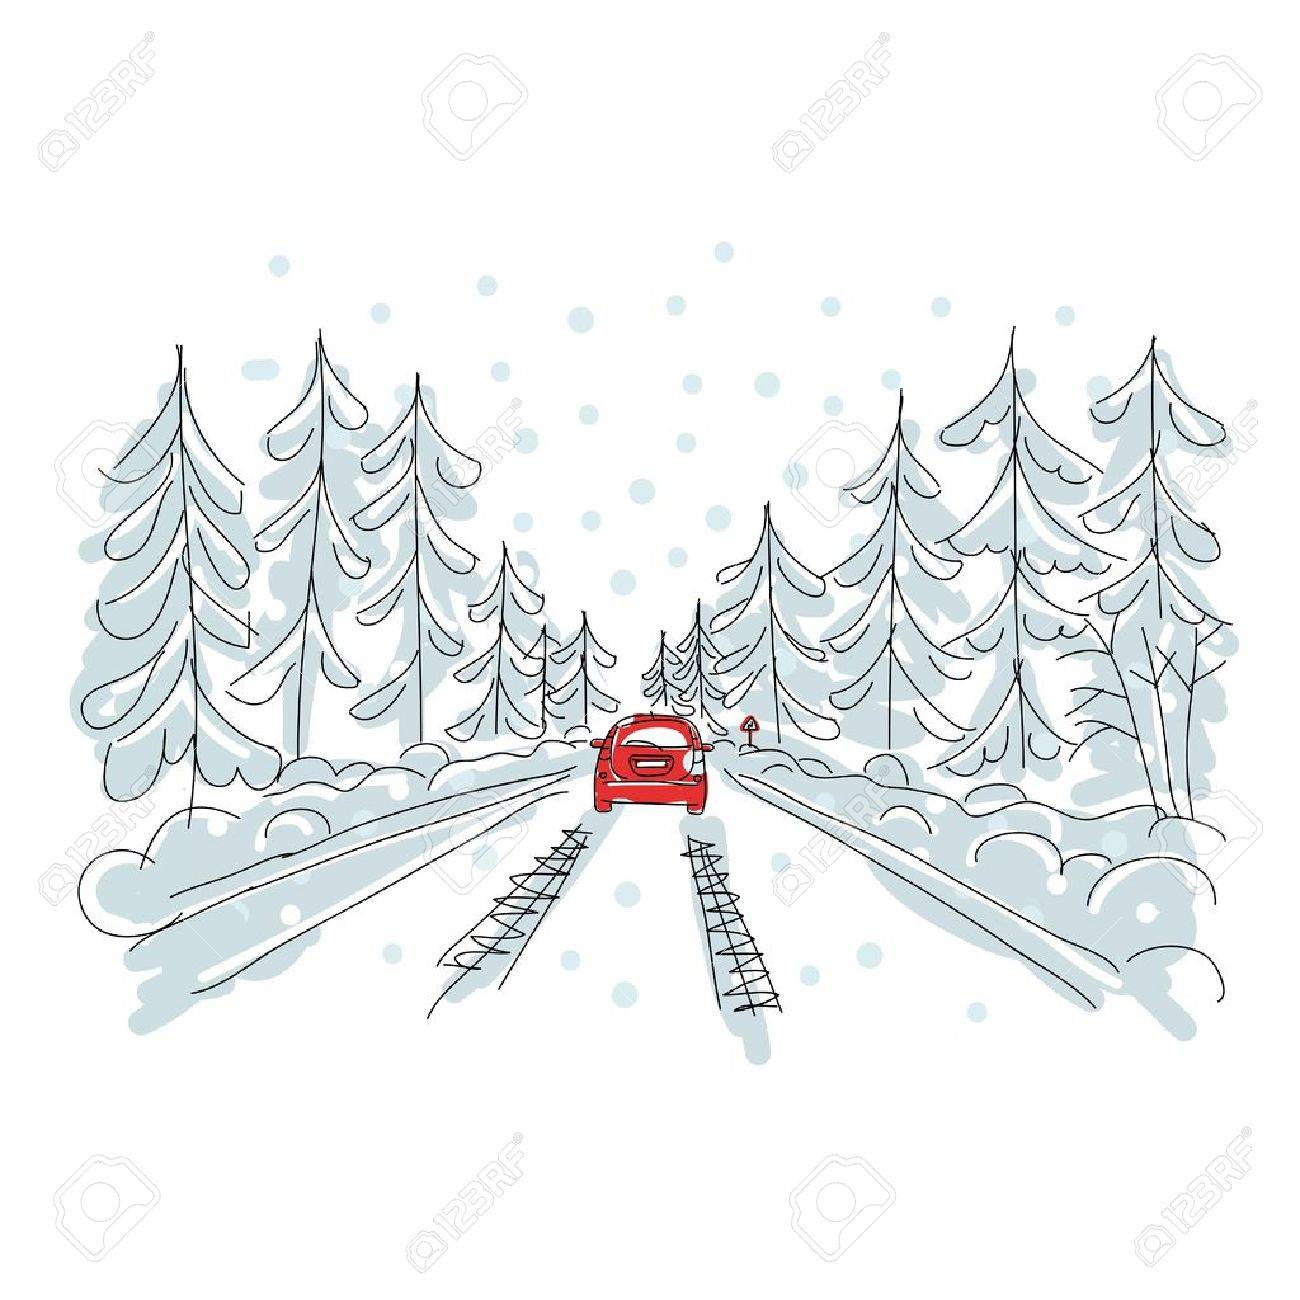 Red car on winter road, sketch for your design Stock Vector - 16798543